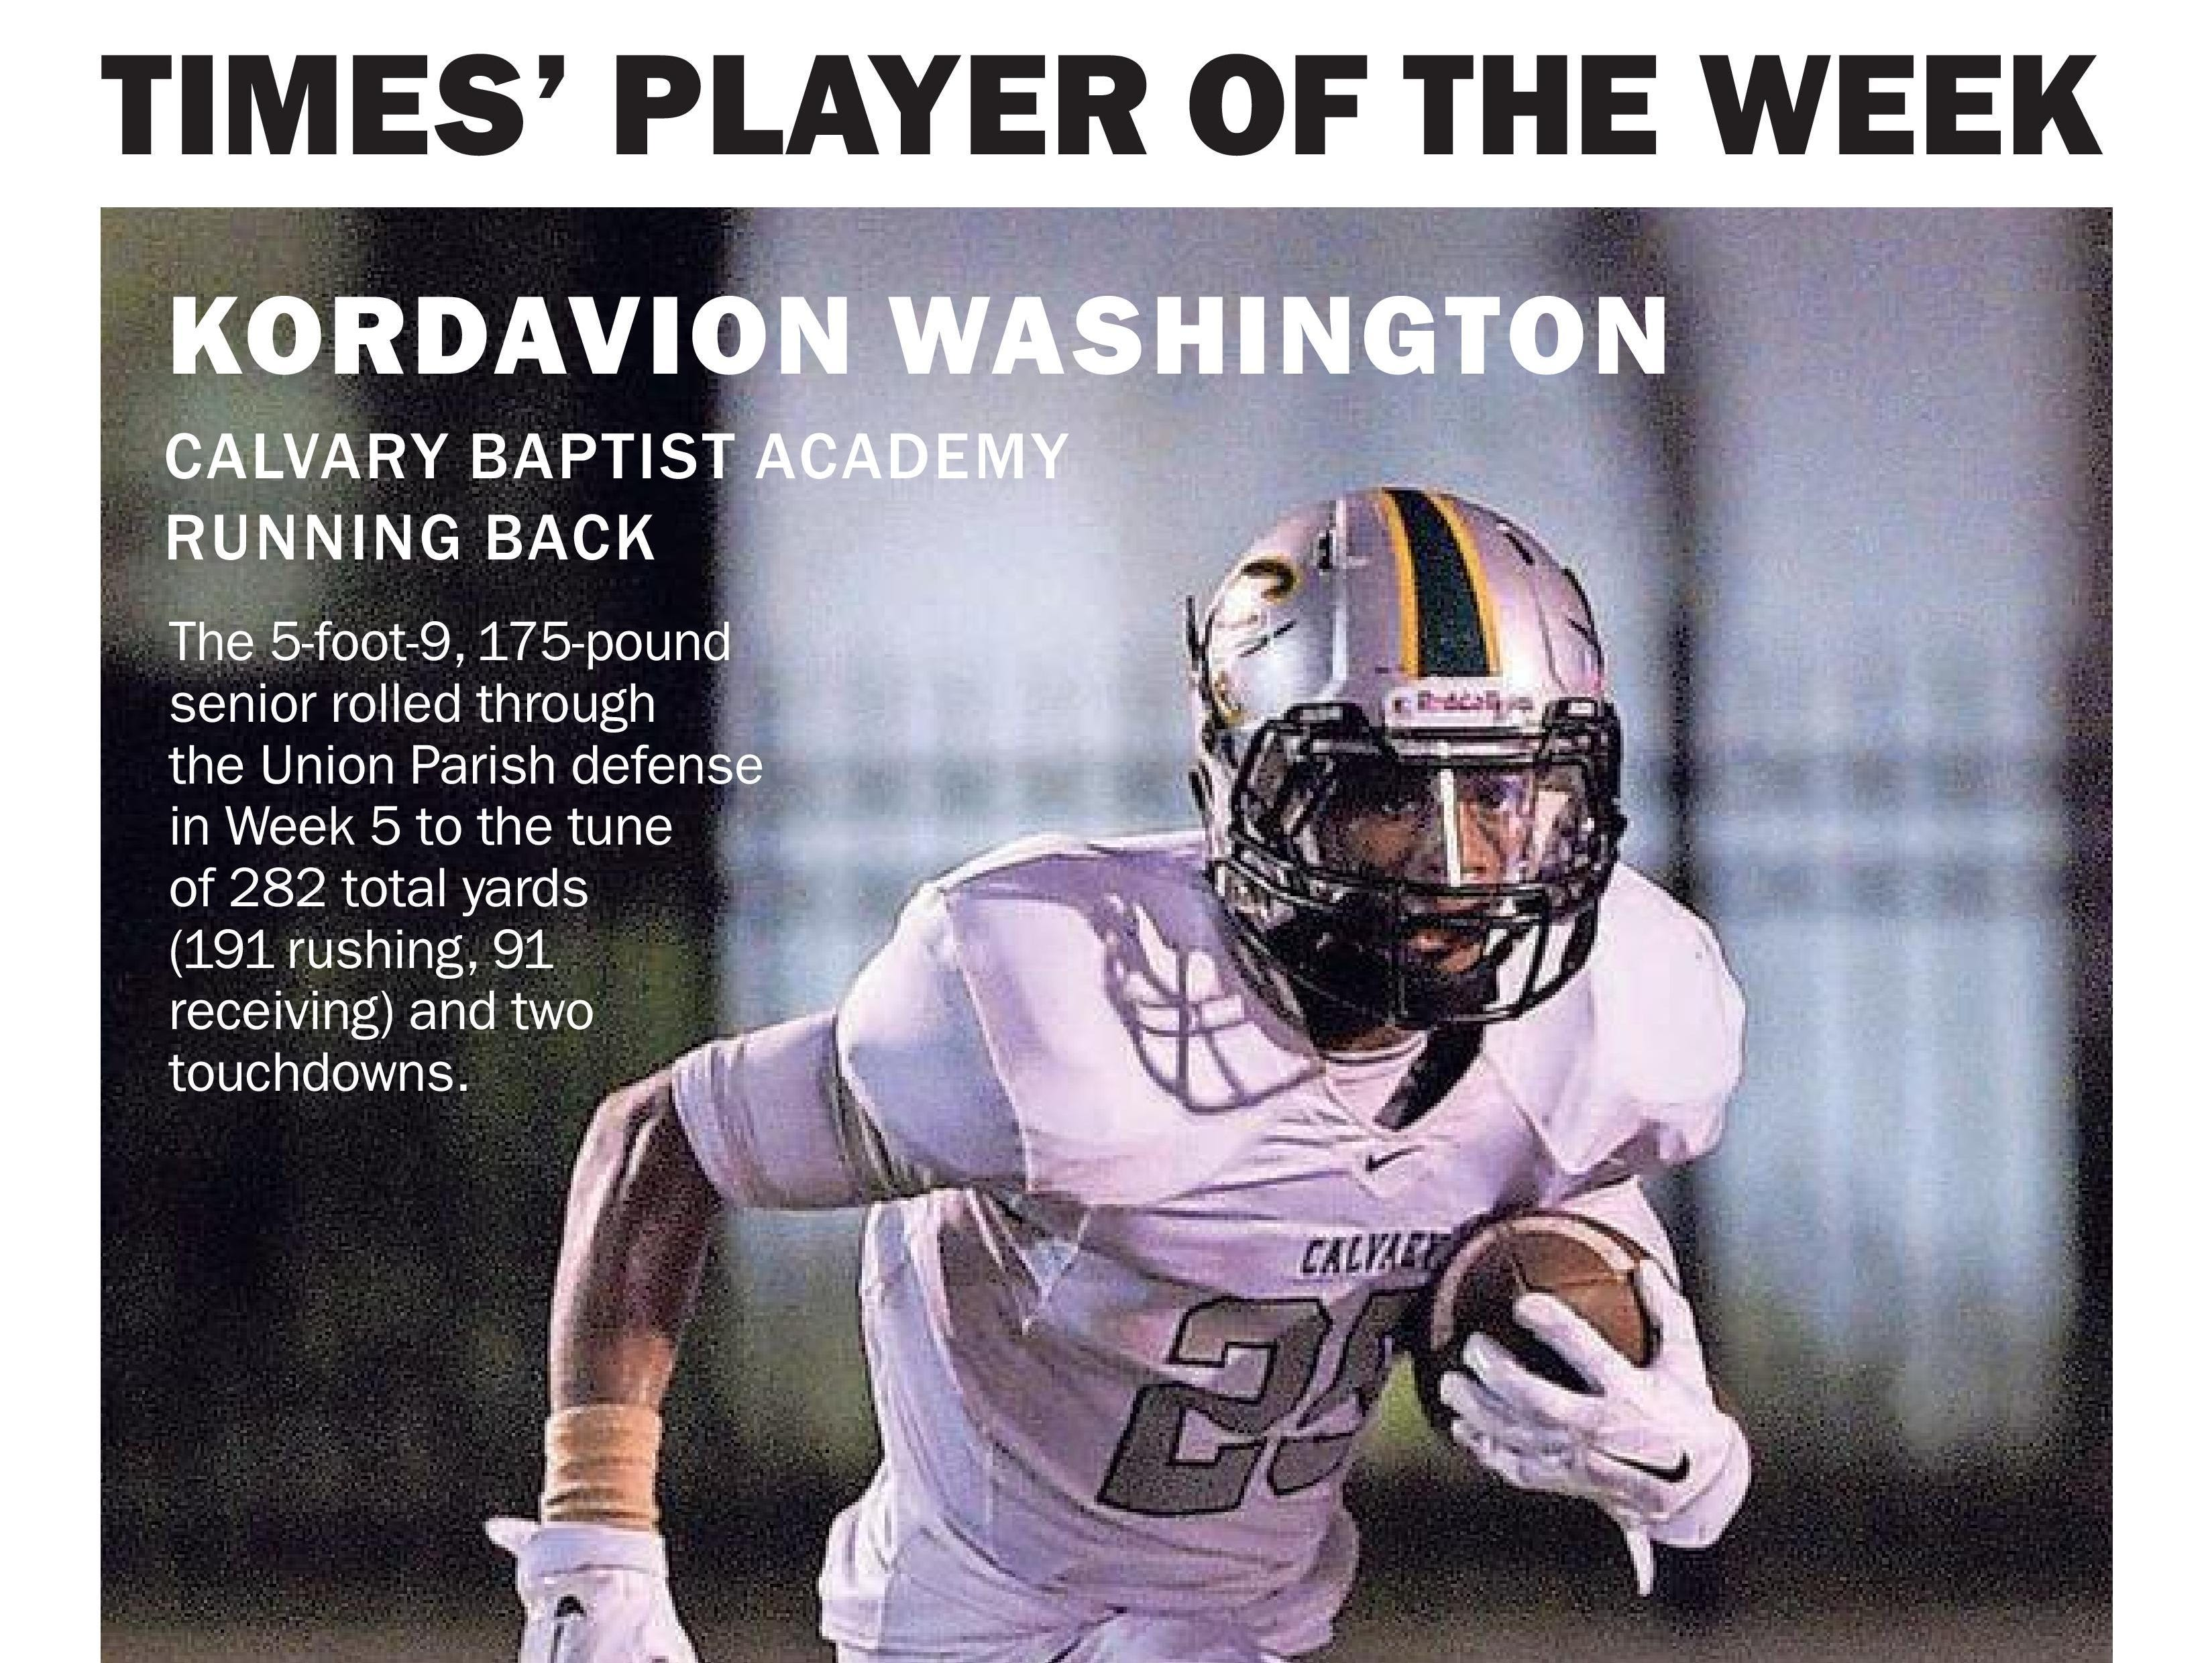 Kordavion Washington picked up The Times' Week 5 Player of the Week honor.